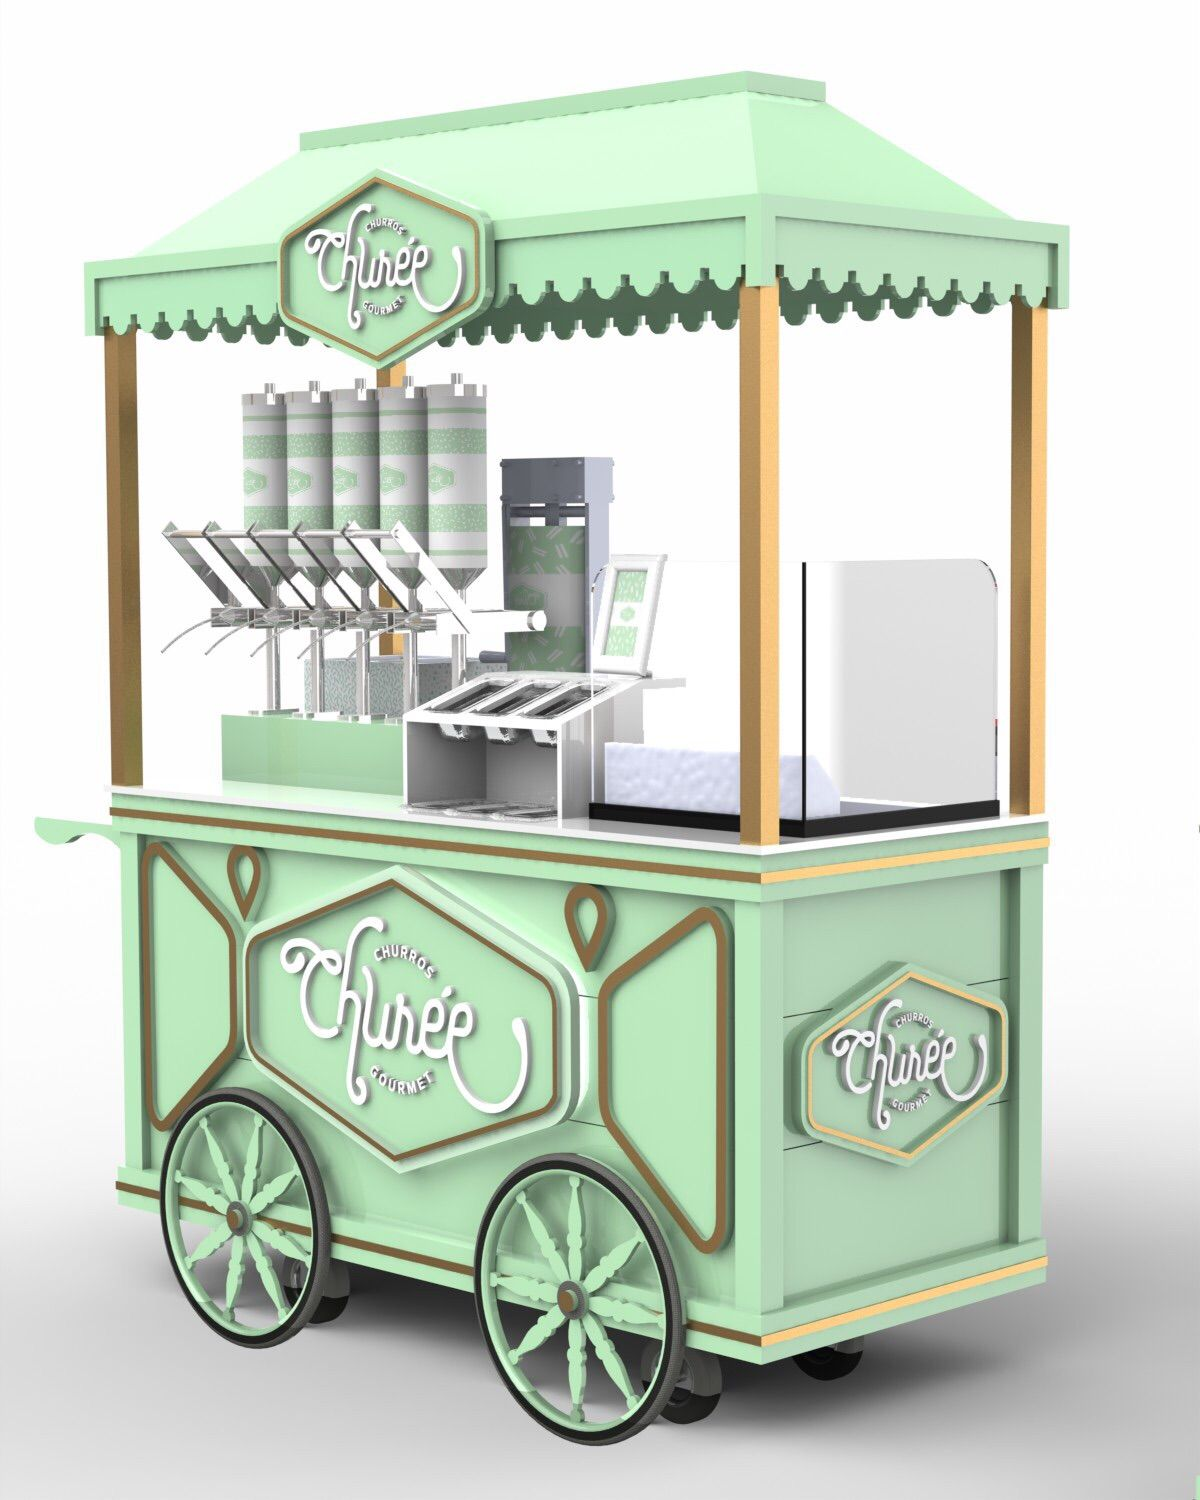 A vez do churro gourmet food truck churros and kiosk for Coffee cart design